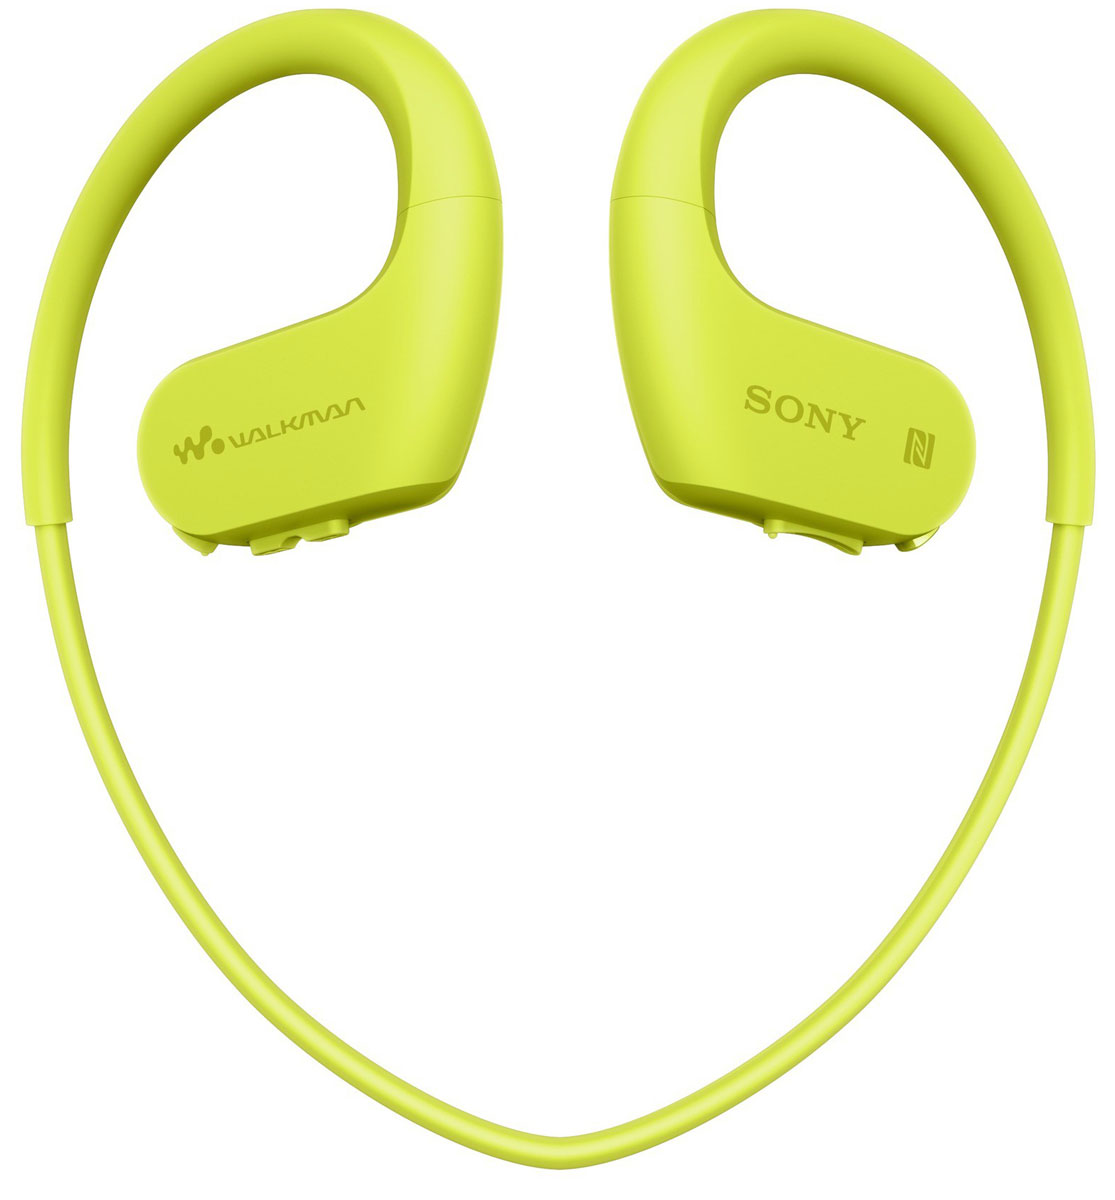 Sony NW-WS623, Lime МР3-плеер плеер sony nw a35hn